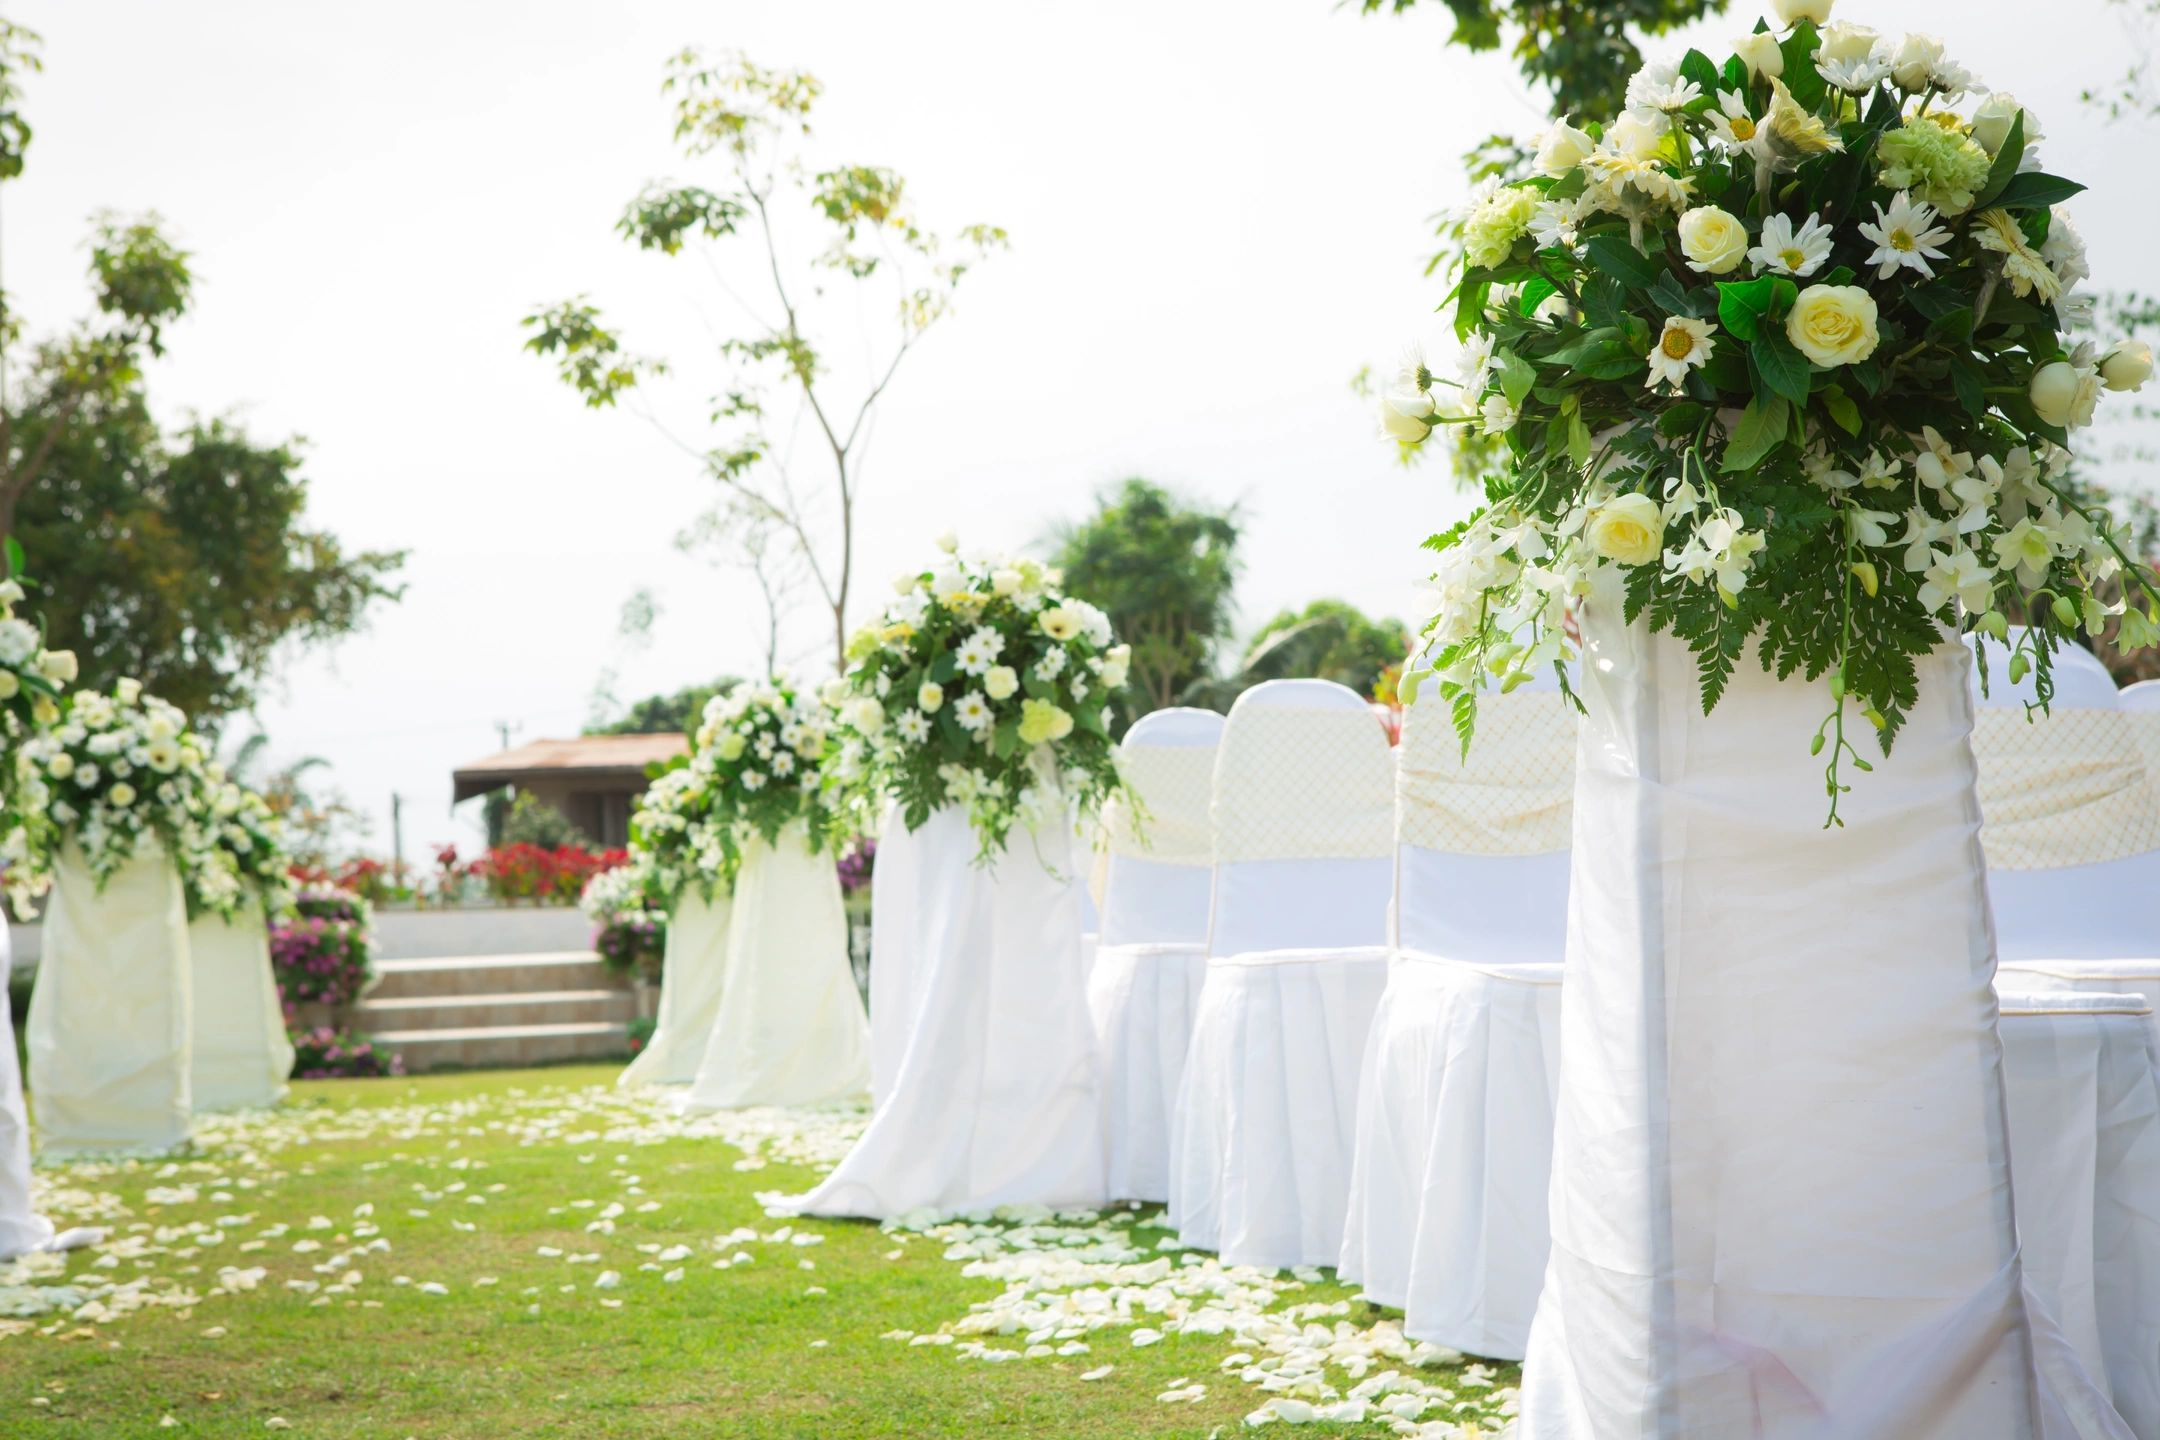 The details make a wedding great, but what about the wedding venue?